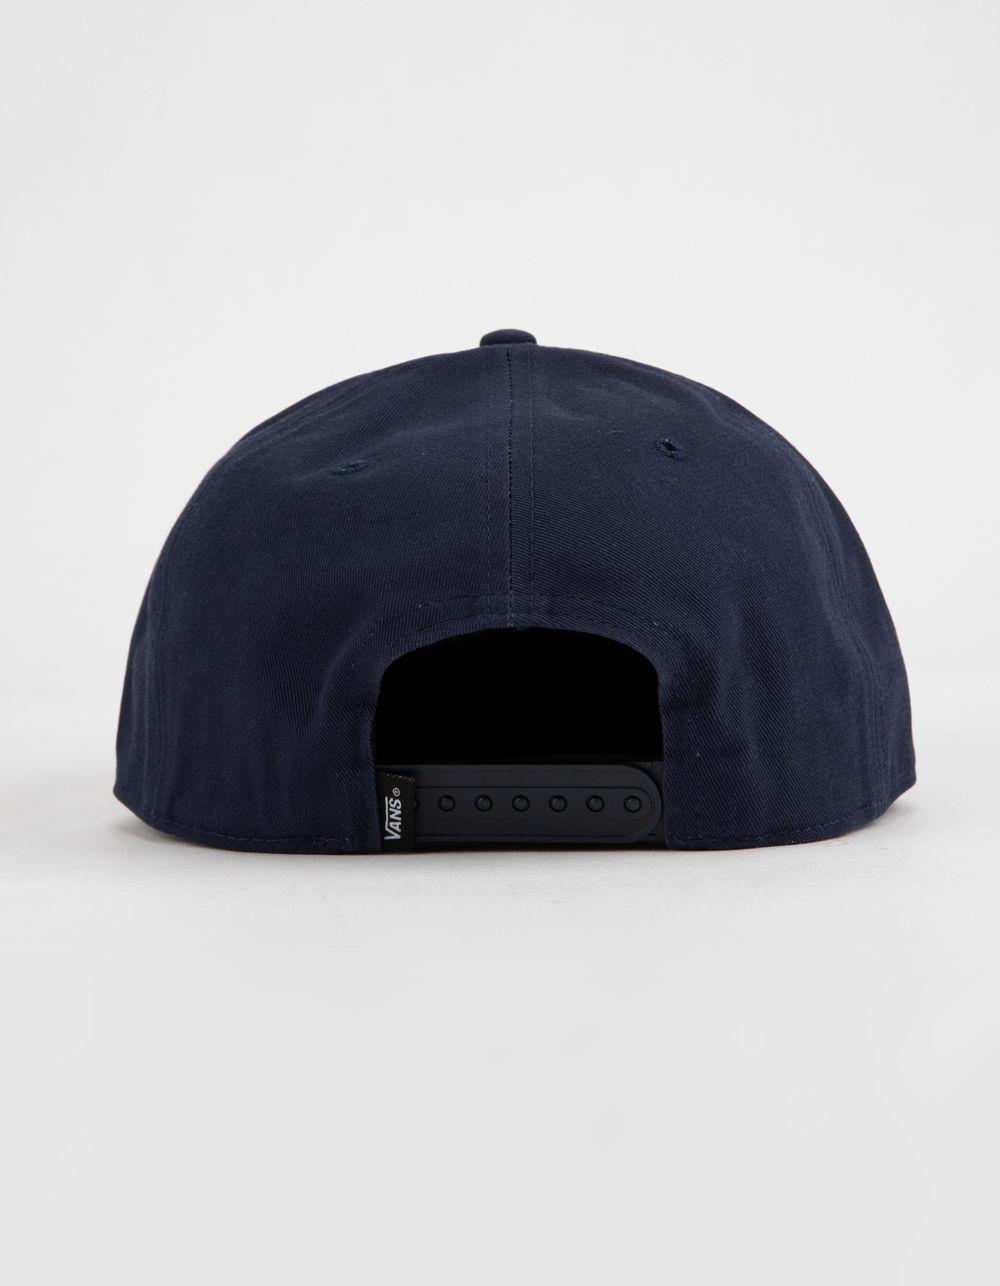 Lyst - Vans Allover It Mens Snapback Hat in Blue for Men - Save 78% 76383b0d48f